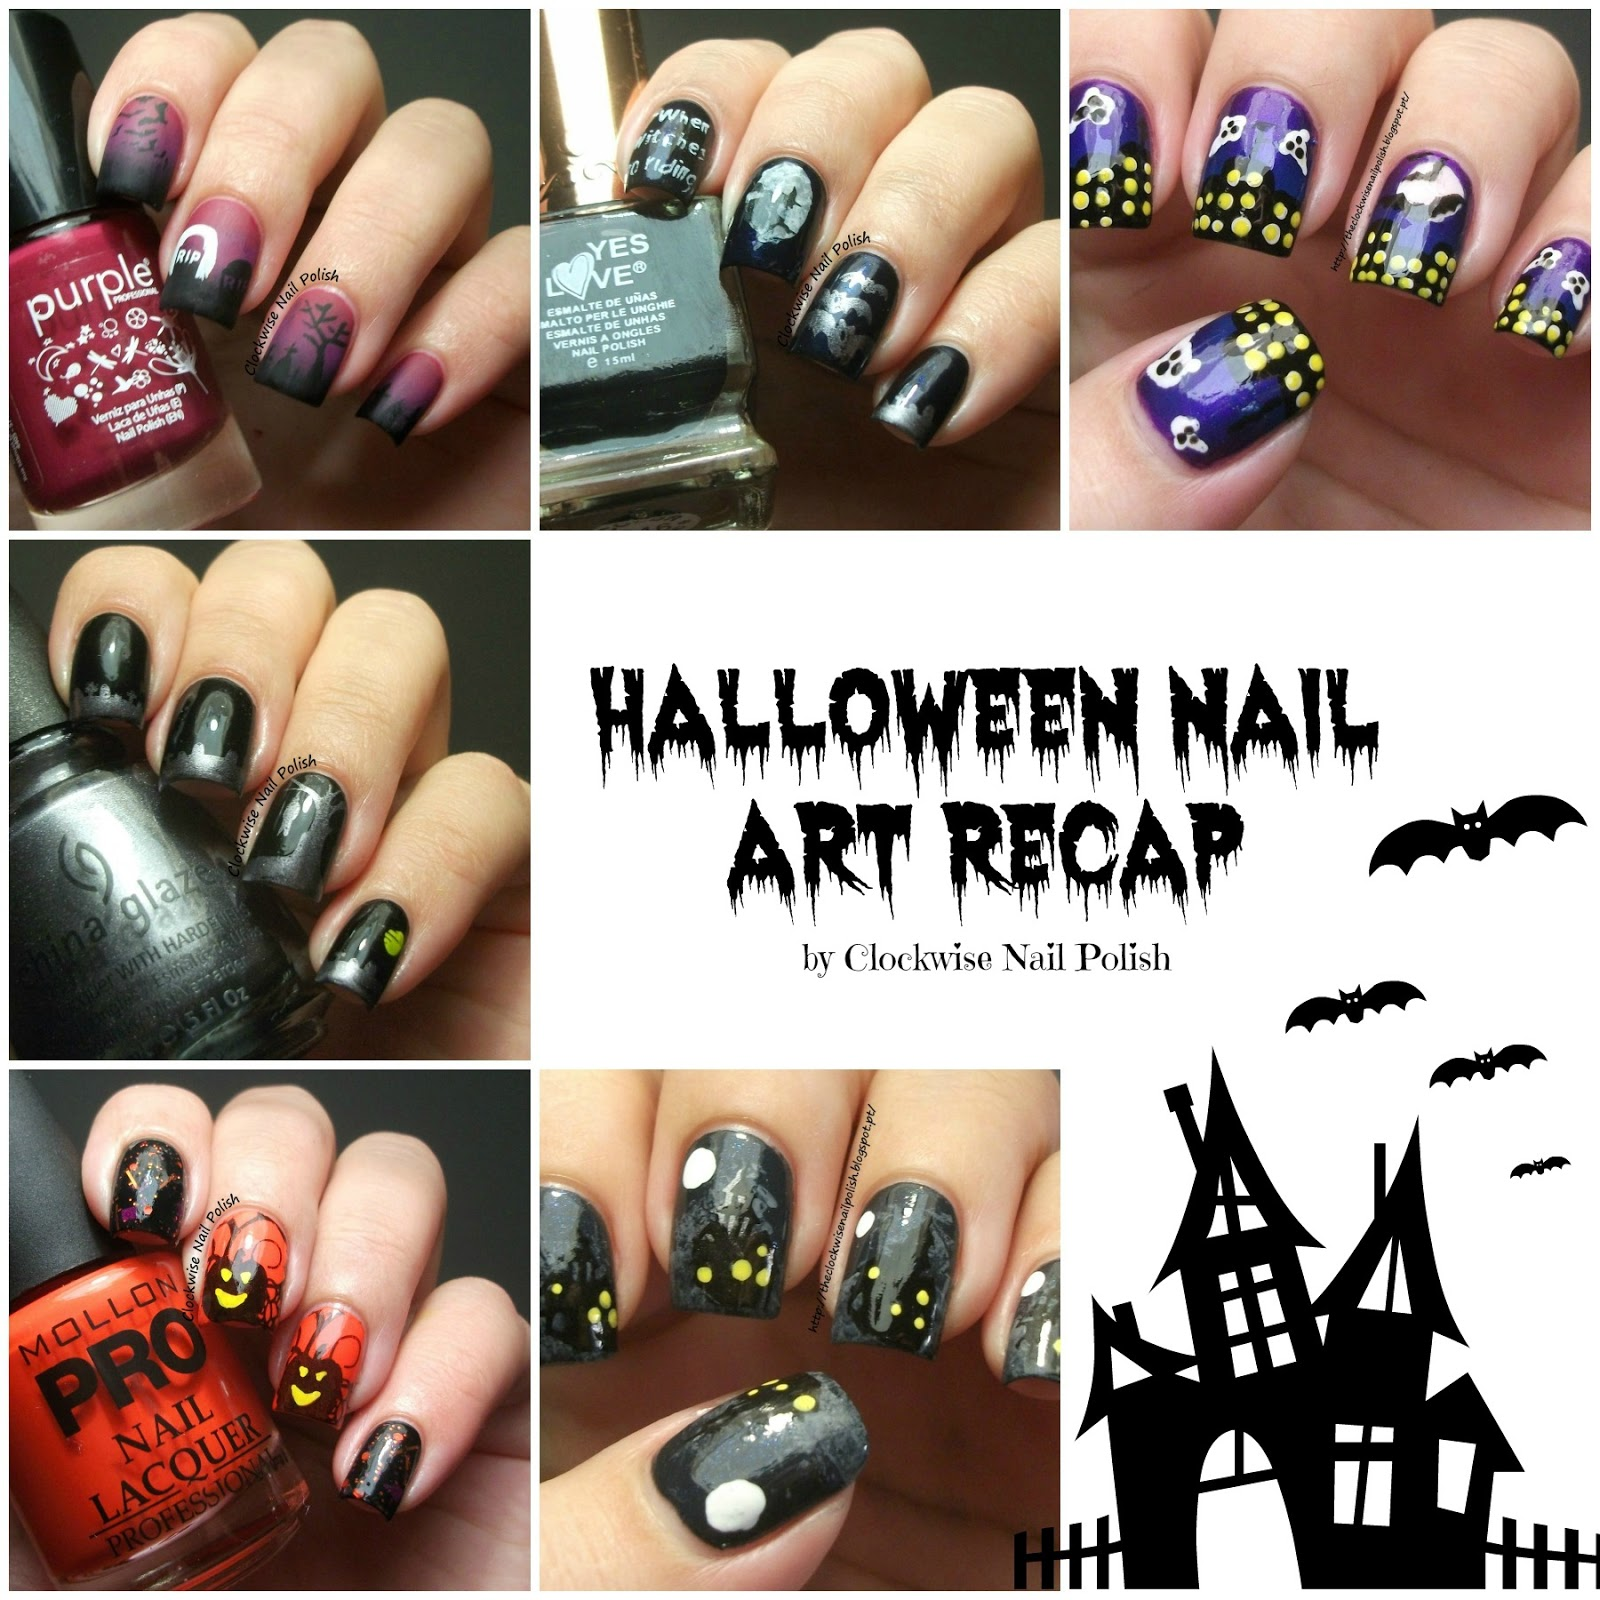 The clockwise nail polish halloween nail art 2012 2013 recap prinsesfo Choice Image